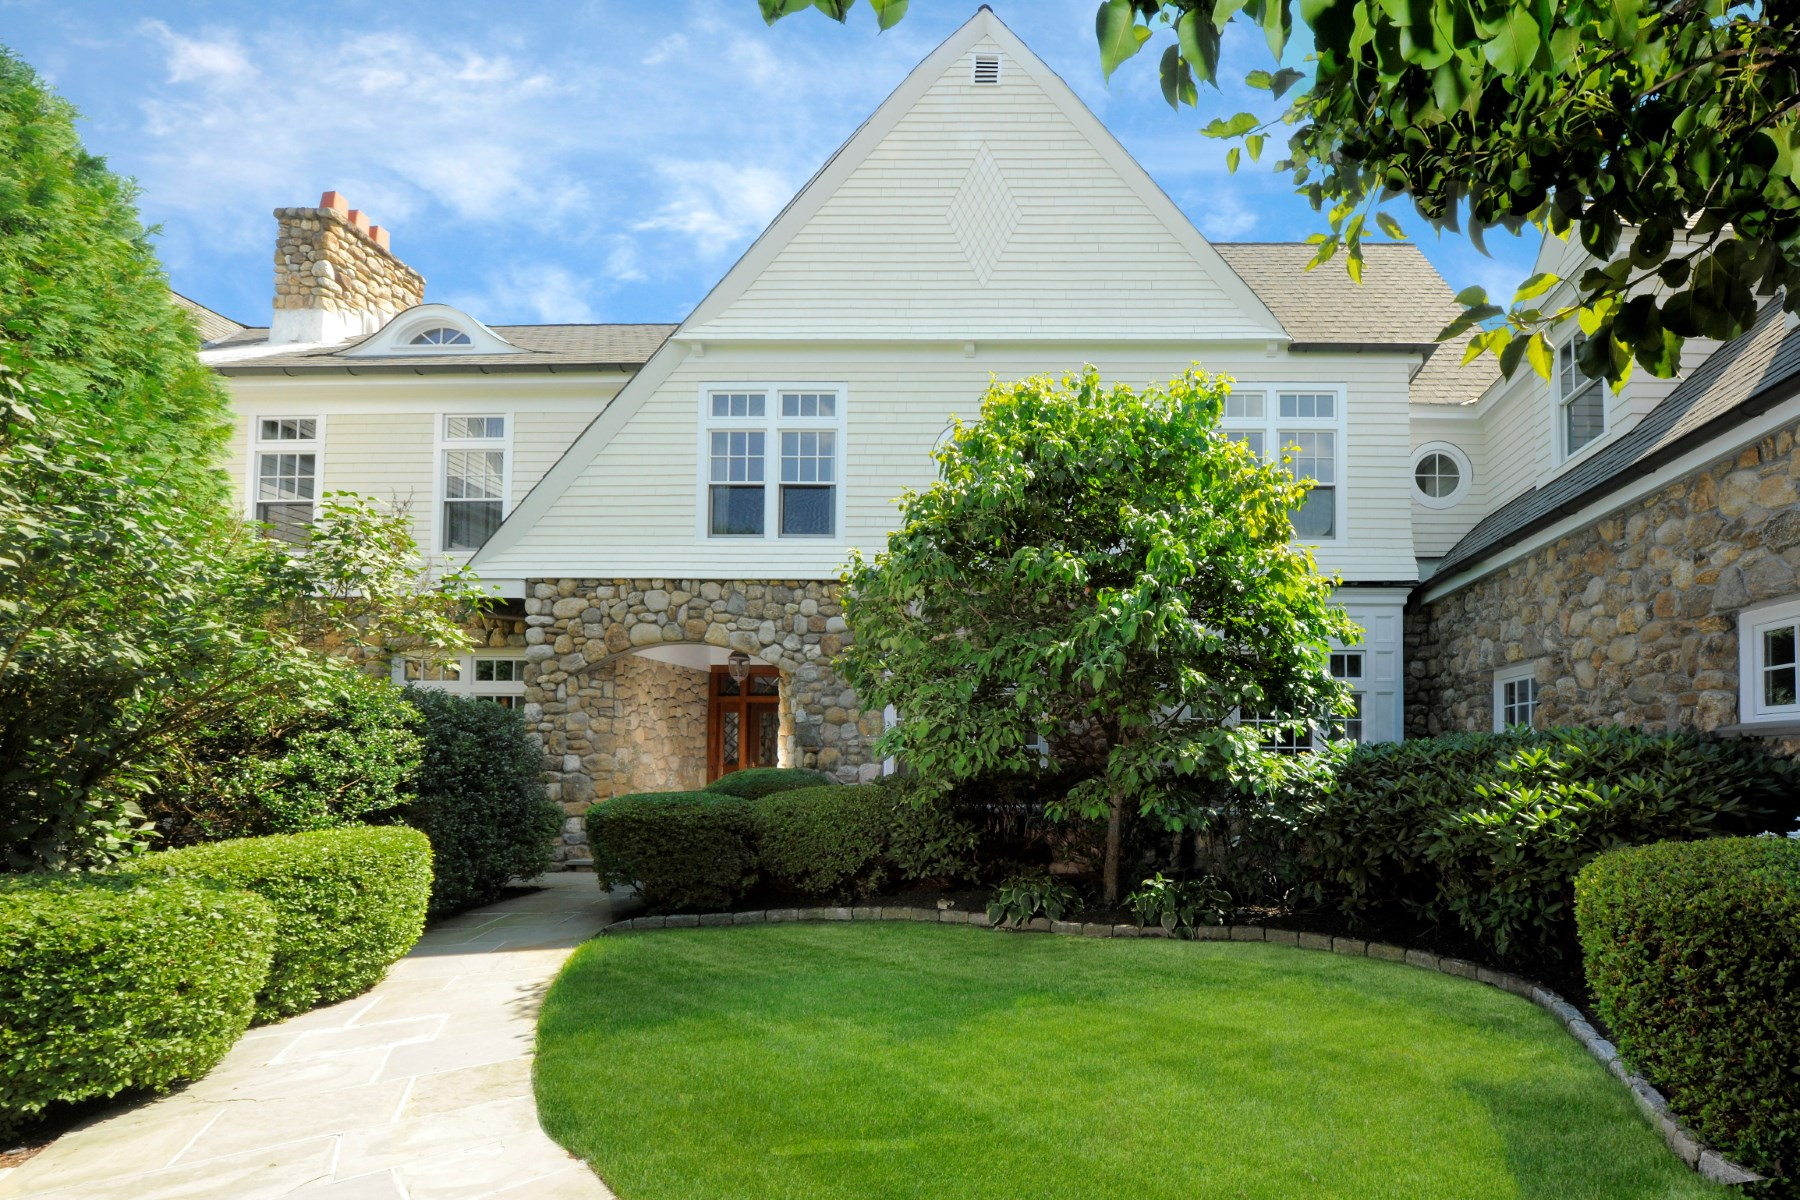 Condominium for Sale at 10 Edgewood Drive #3b Central Greenwich, Greenwich, Connecticut, 06830 United States